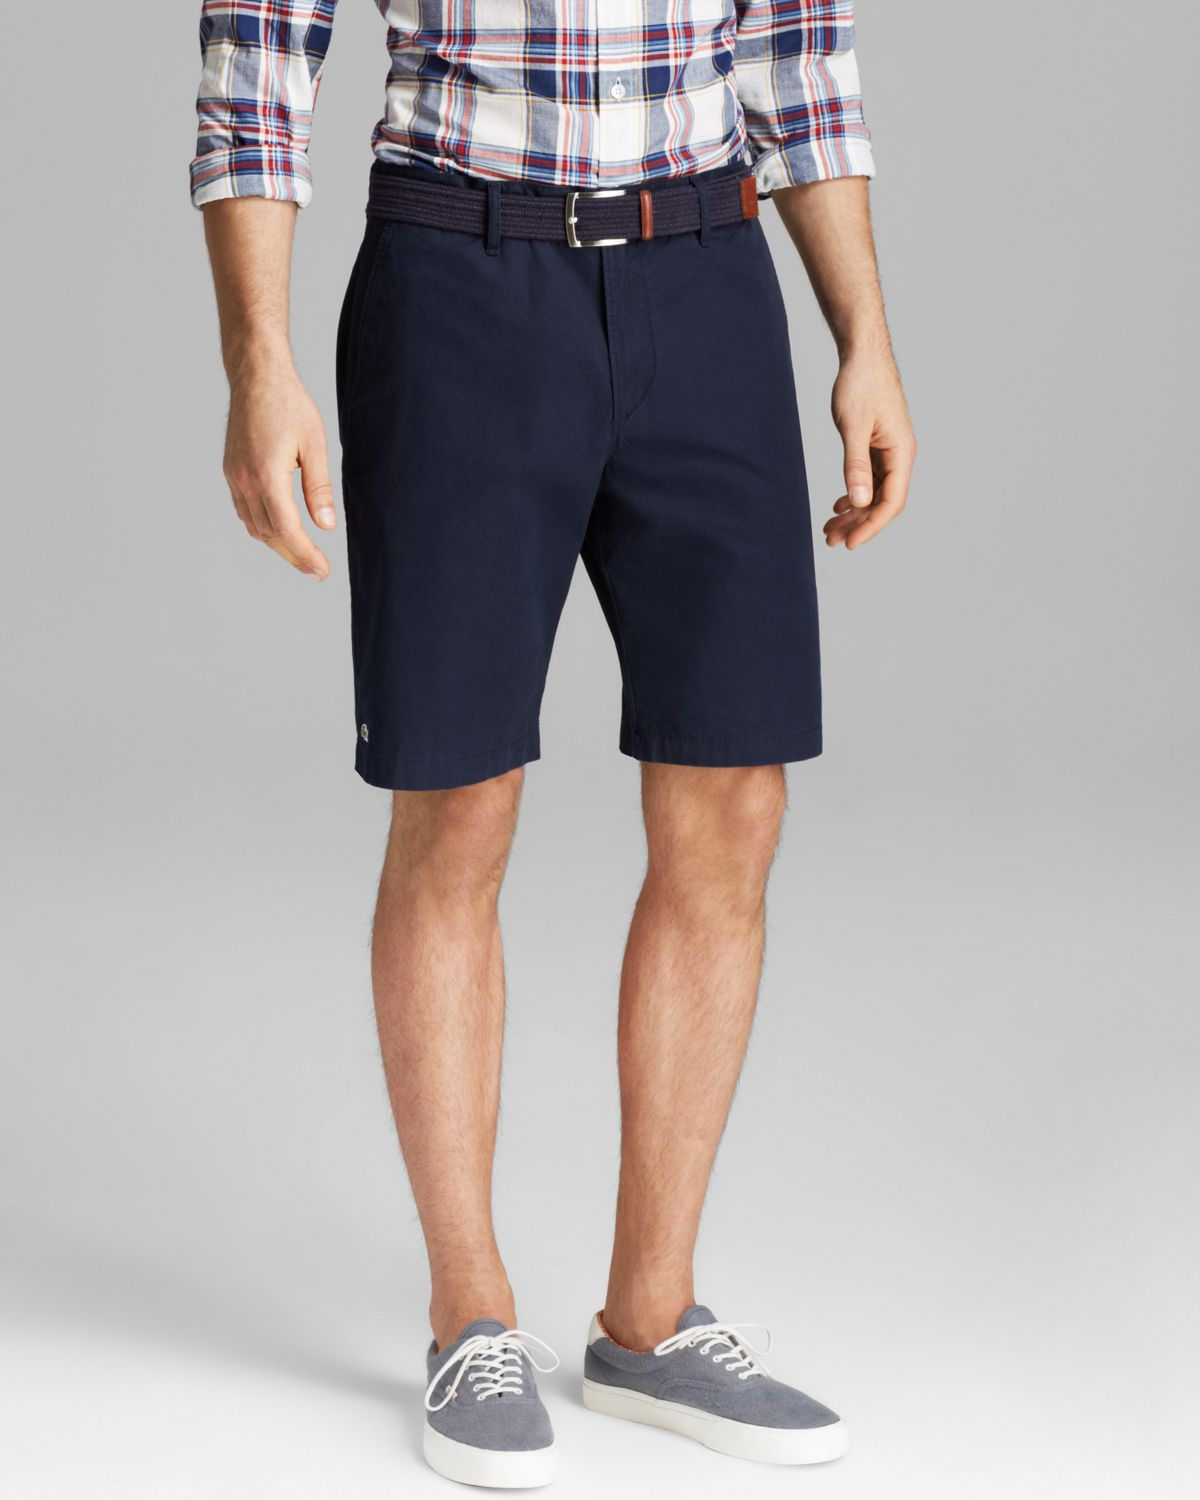 Bermuda Shorts for Men We invite you to experience TABS. Expertly tailored for a flattering, straight-leg fit, the traditional cut is balanced with bold colours and flamboyant linings. Choose from a range of bright, Bermuda inspired colours and get ready to step into summer.